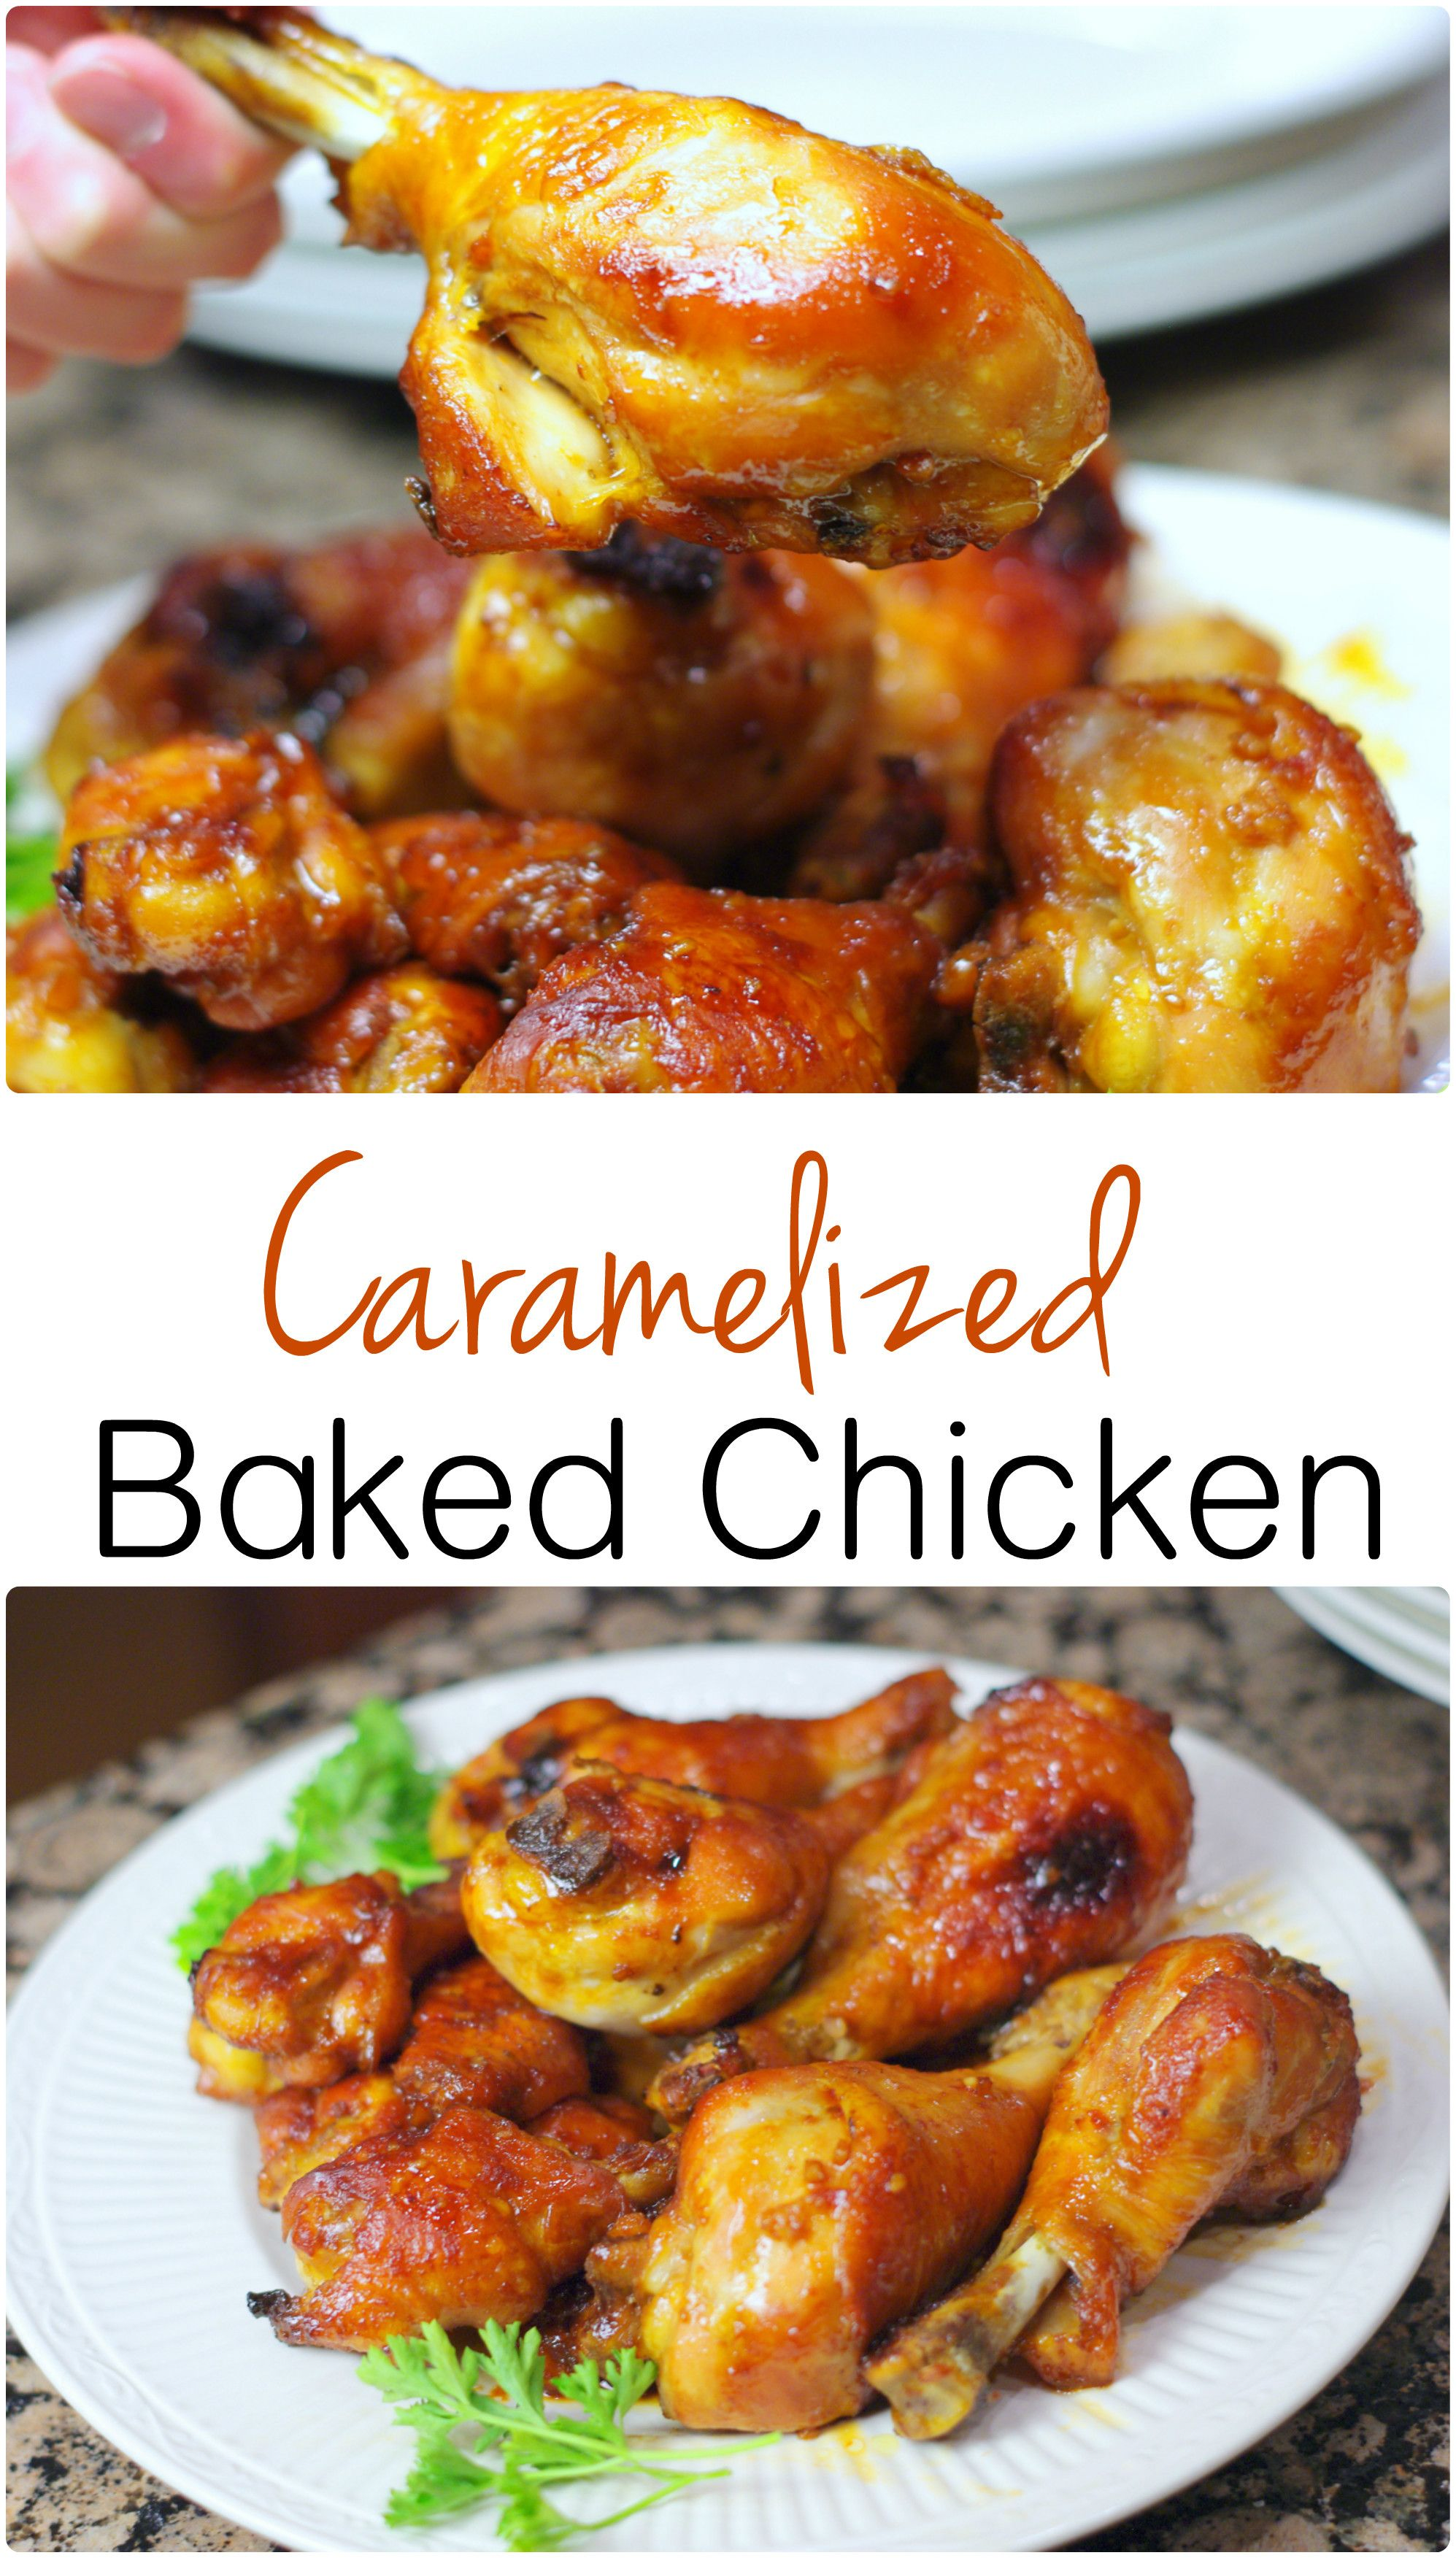 Baked Honey Barbecue Chicken Recipe Home Plate Recipe Barbecue Chicken Recipe Chicken Recipes Baked Chicken